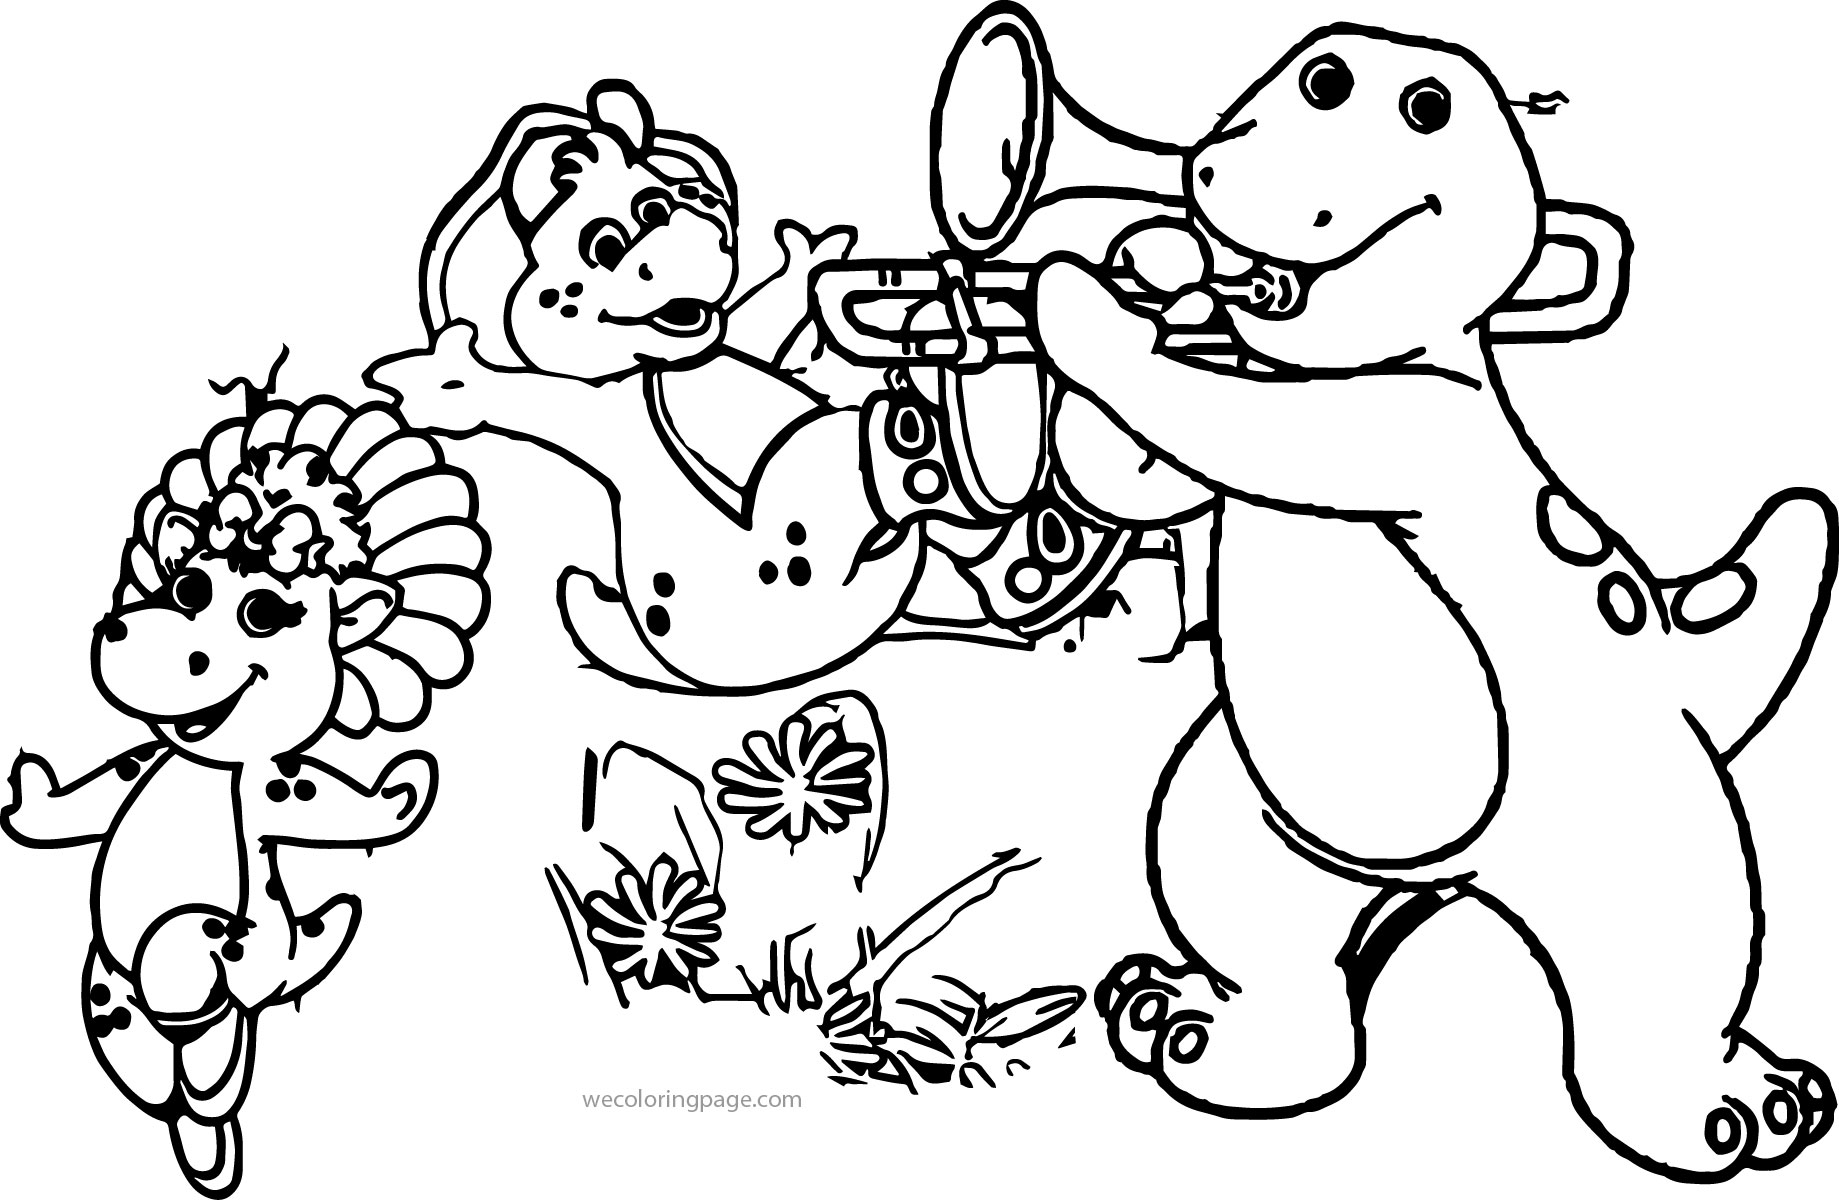 Barney And Friends Coloring Page